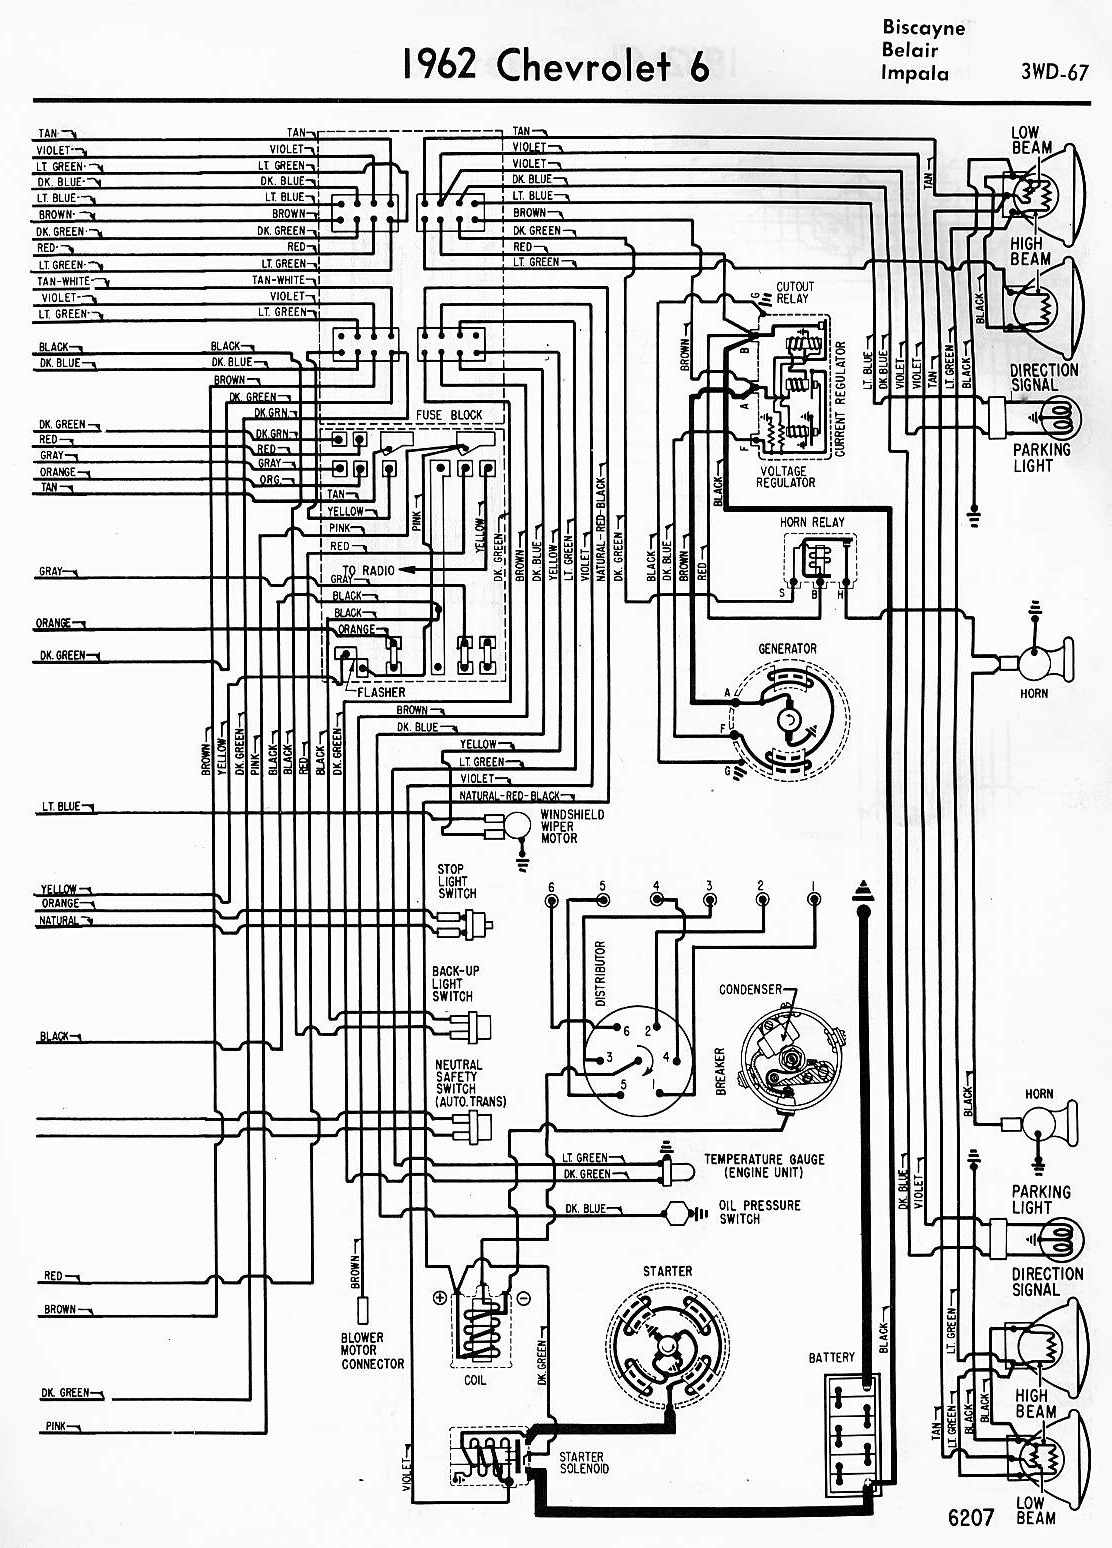 Electrical+Wiring+Diagram+Of+1964+Chevrolet+6 electrical wiring diagram of 1962 chevrolet 6 all about wiring  at mifinder.co